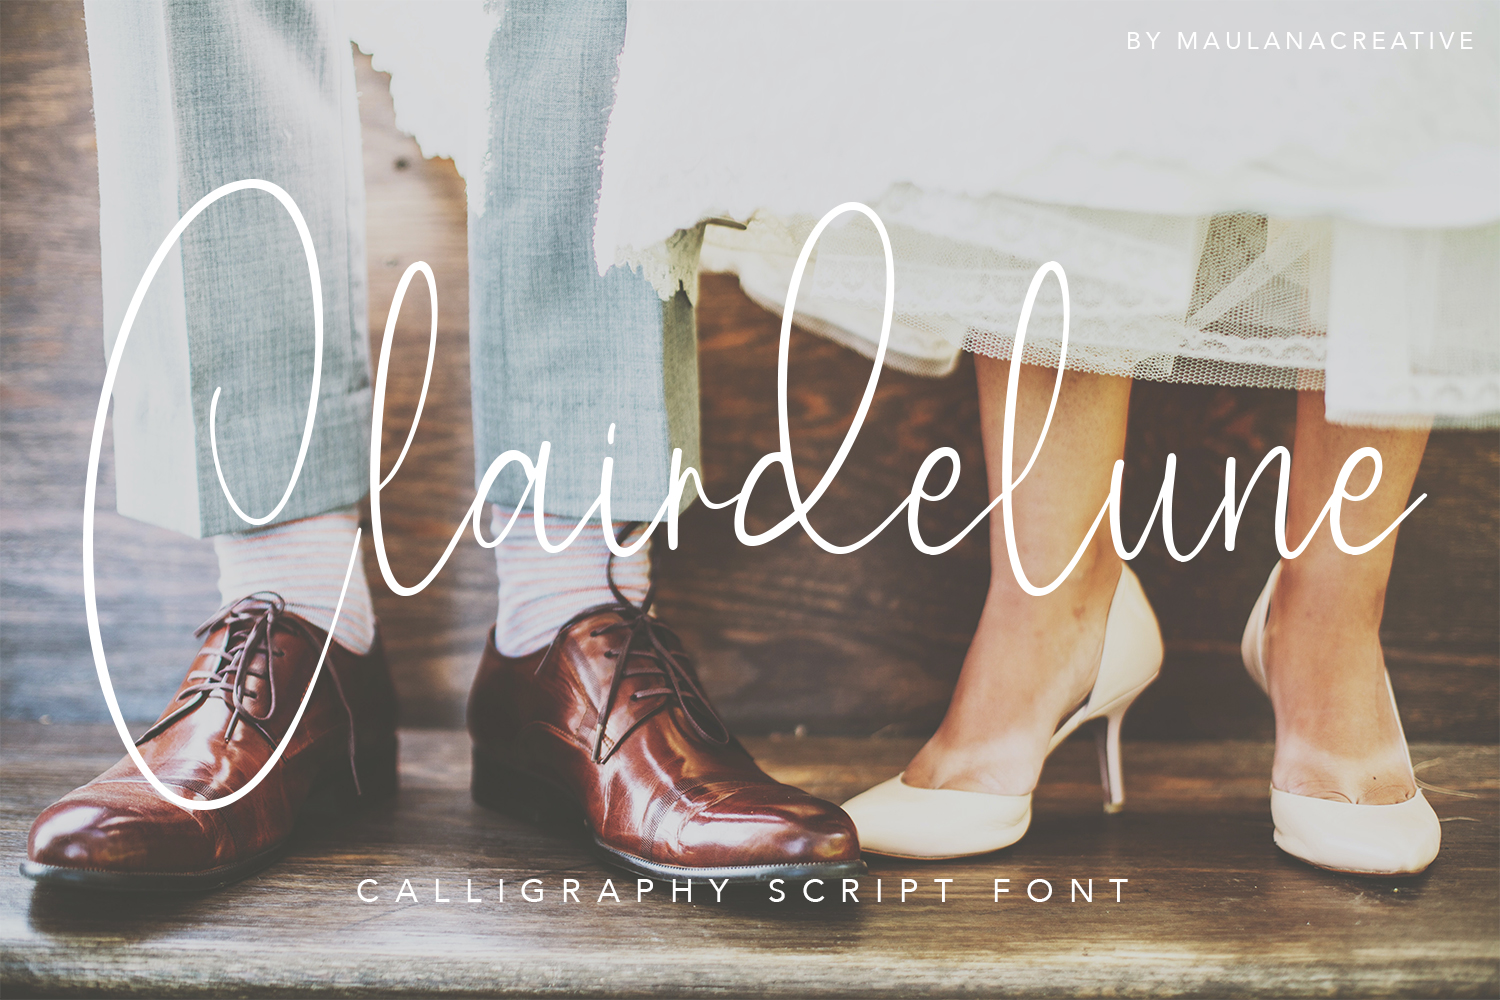 Clairdelune Calligraphy Modern Script Font-1